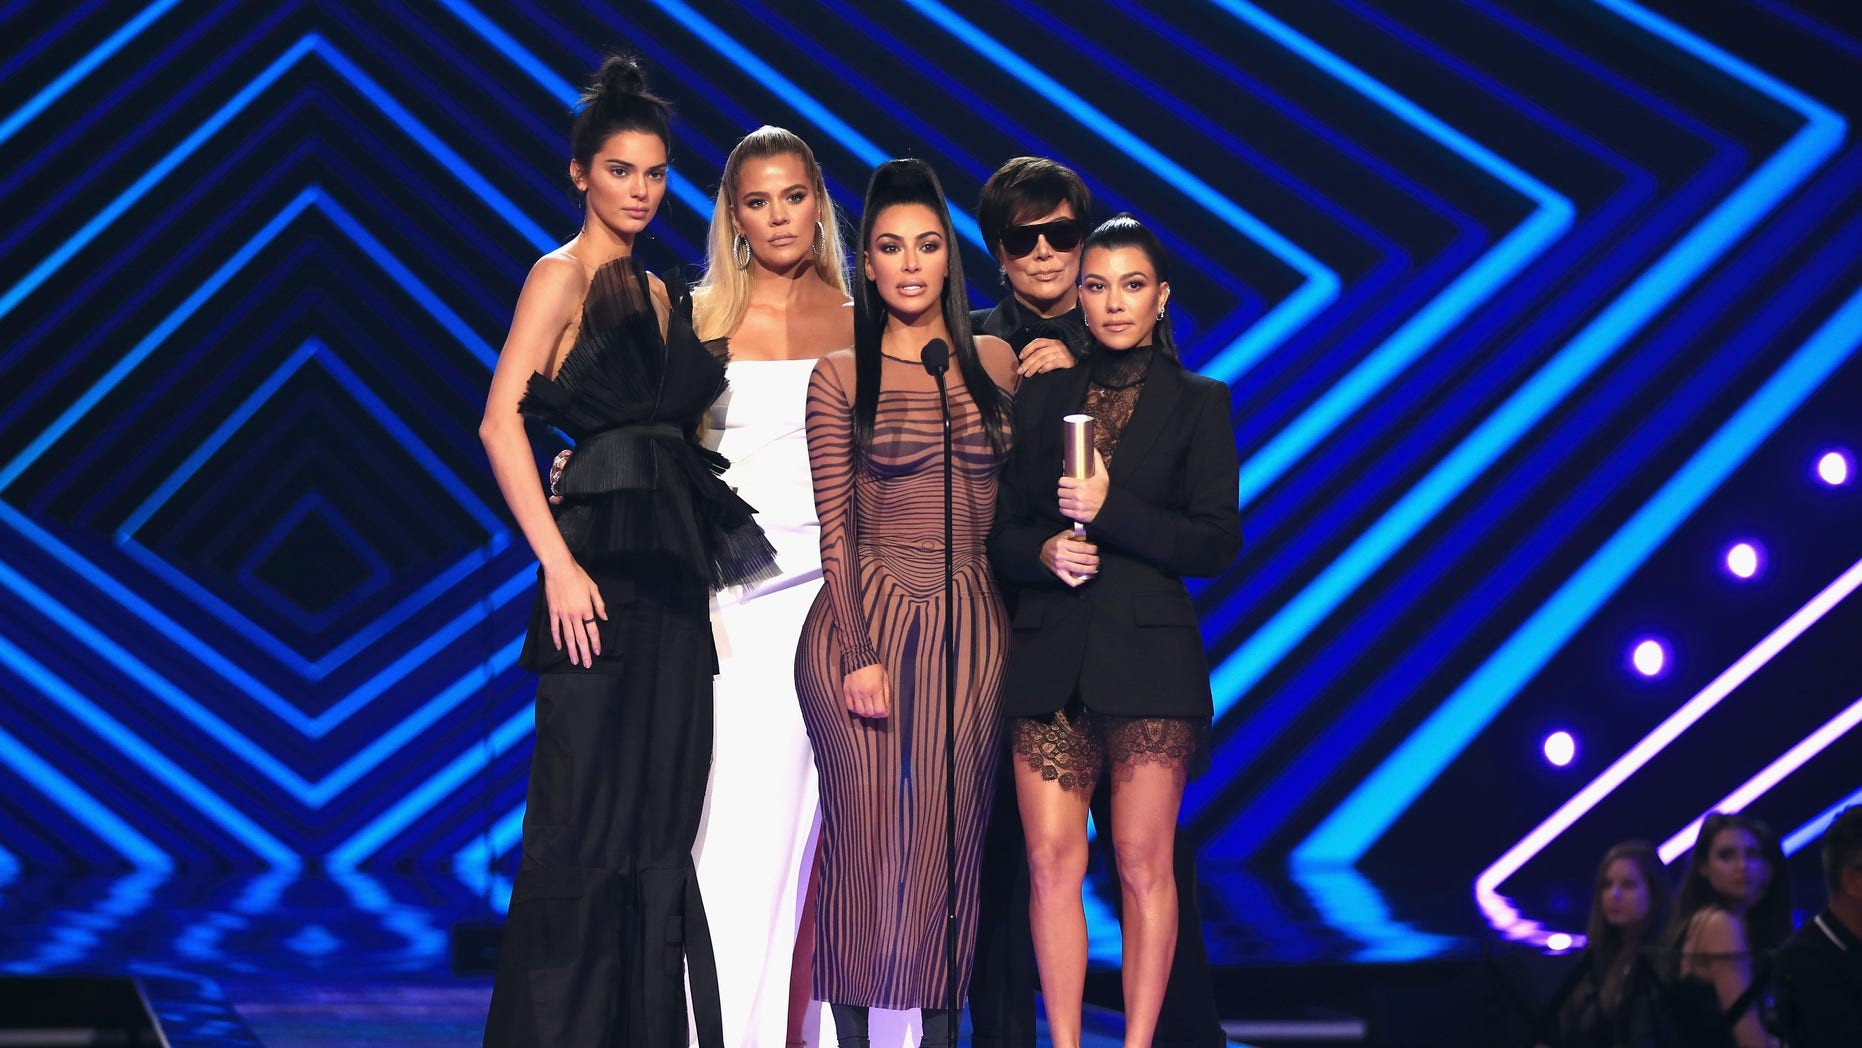 Kendall Jenner, Khloe Kardashian, Kim Kardashian West, Kris Jenner, and Kourtney Kardashian accept The Reality Show of 2018 award for 'Keeping Up with the Kardashians' on stage during the 2018 E! People's Choice Awards.